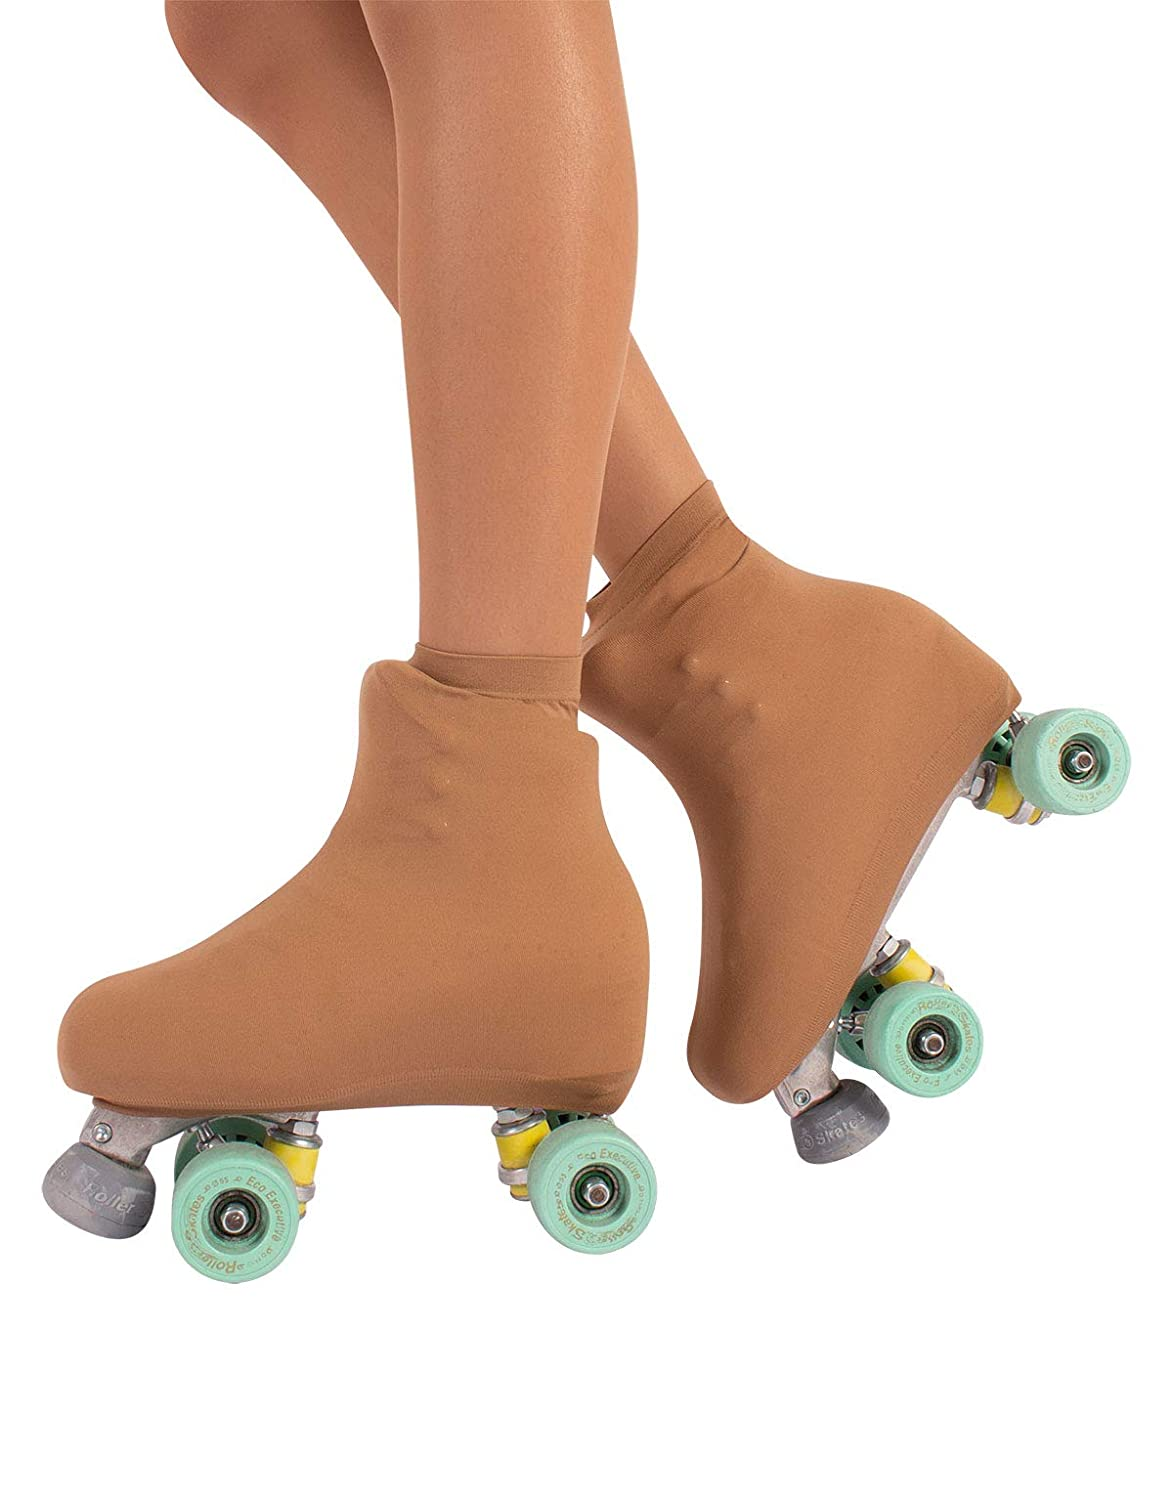 Cover Skates | Skate Boot Covers | Roller and Ice Skating Wear Woman and Girl | 70 DEN | Black, Skin | 10-8 | Made In Italy 11001